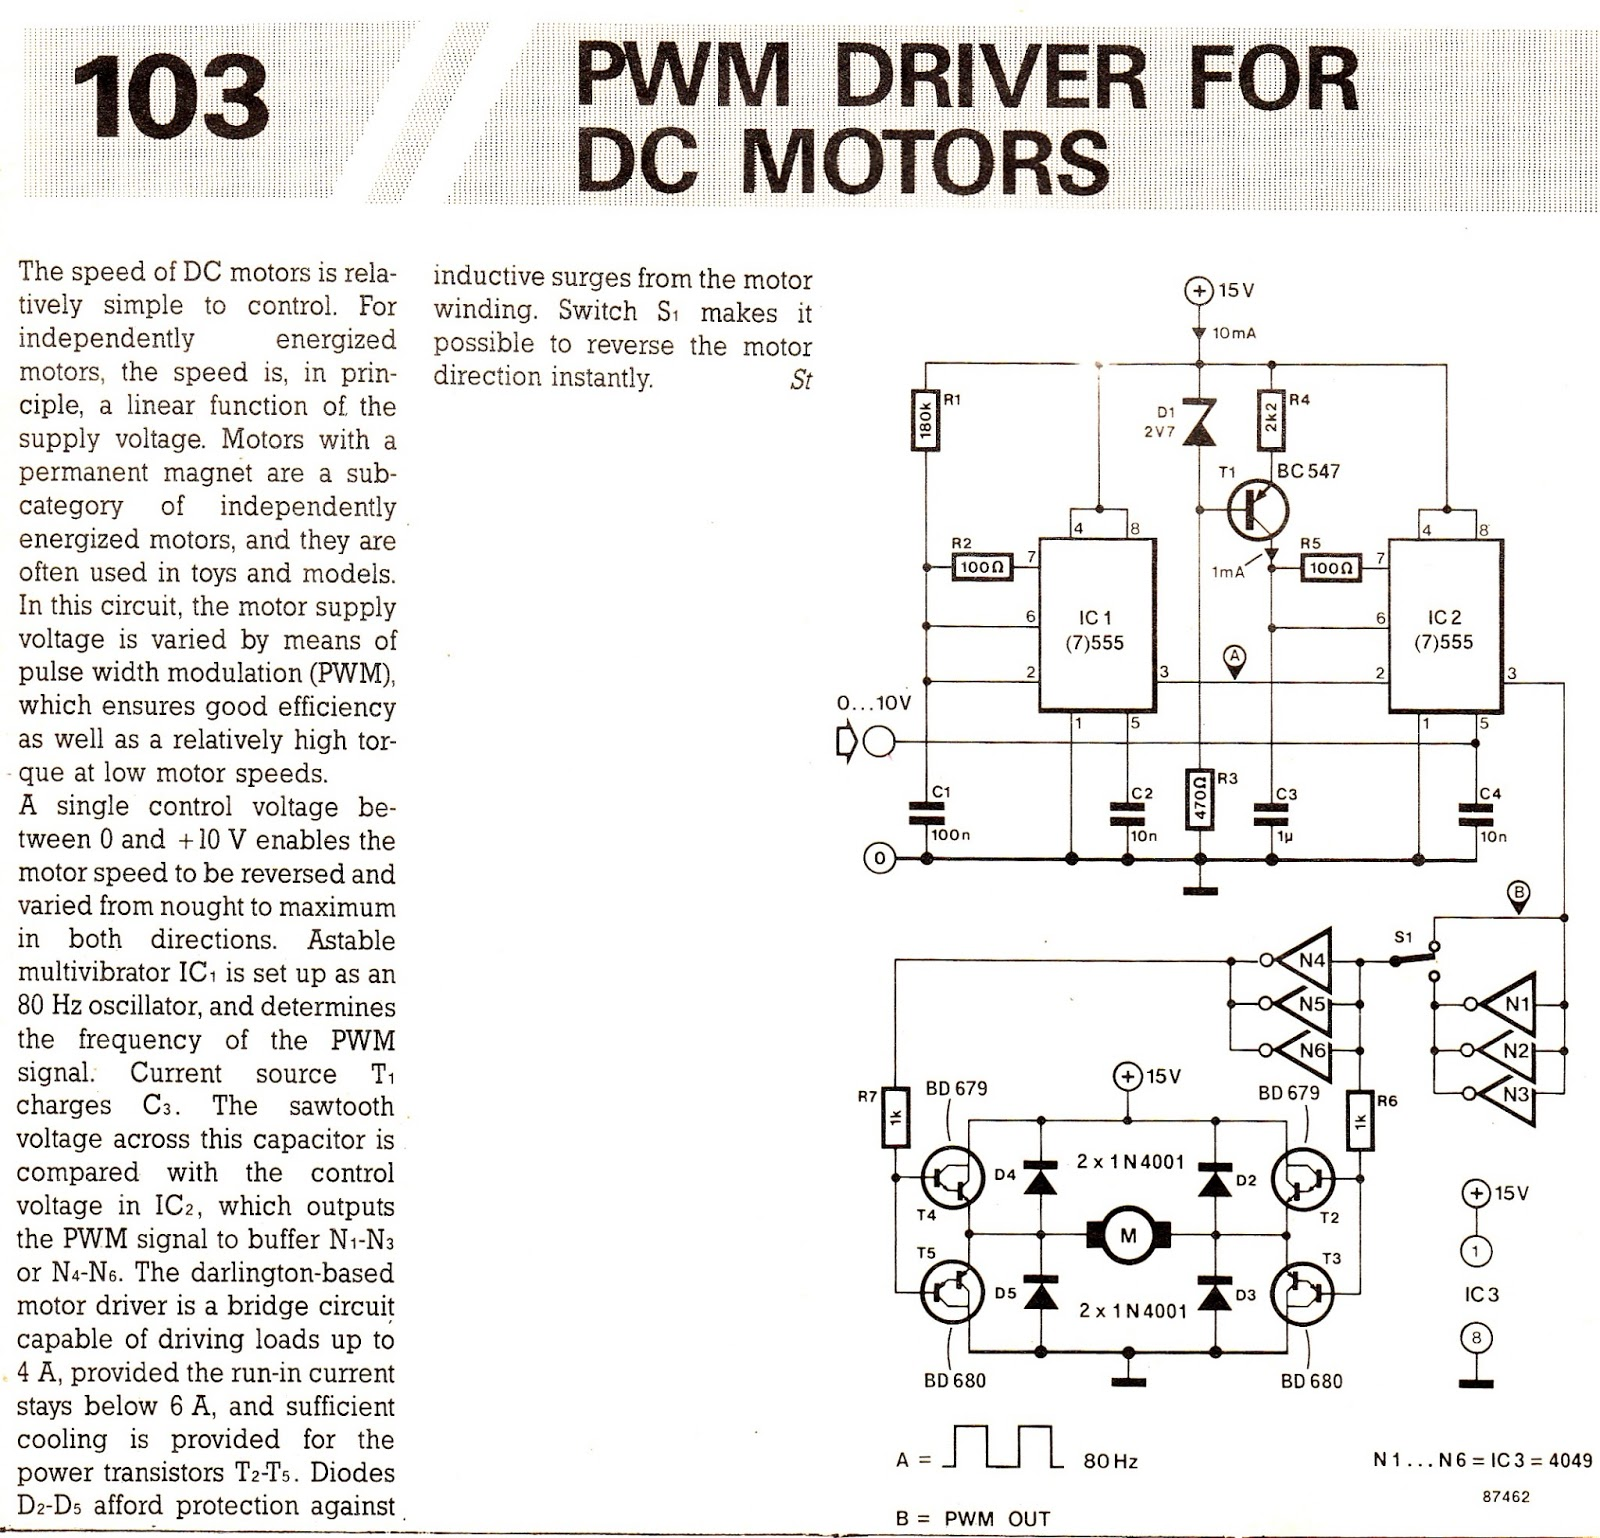 Three Phase Electric Motor Wiring Diagram 3 Phase Motor Wiring